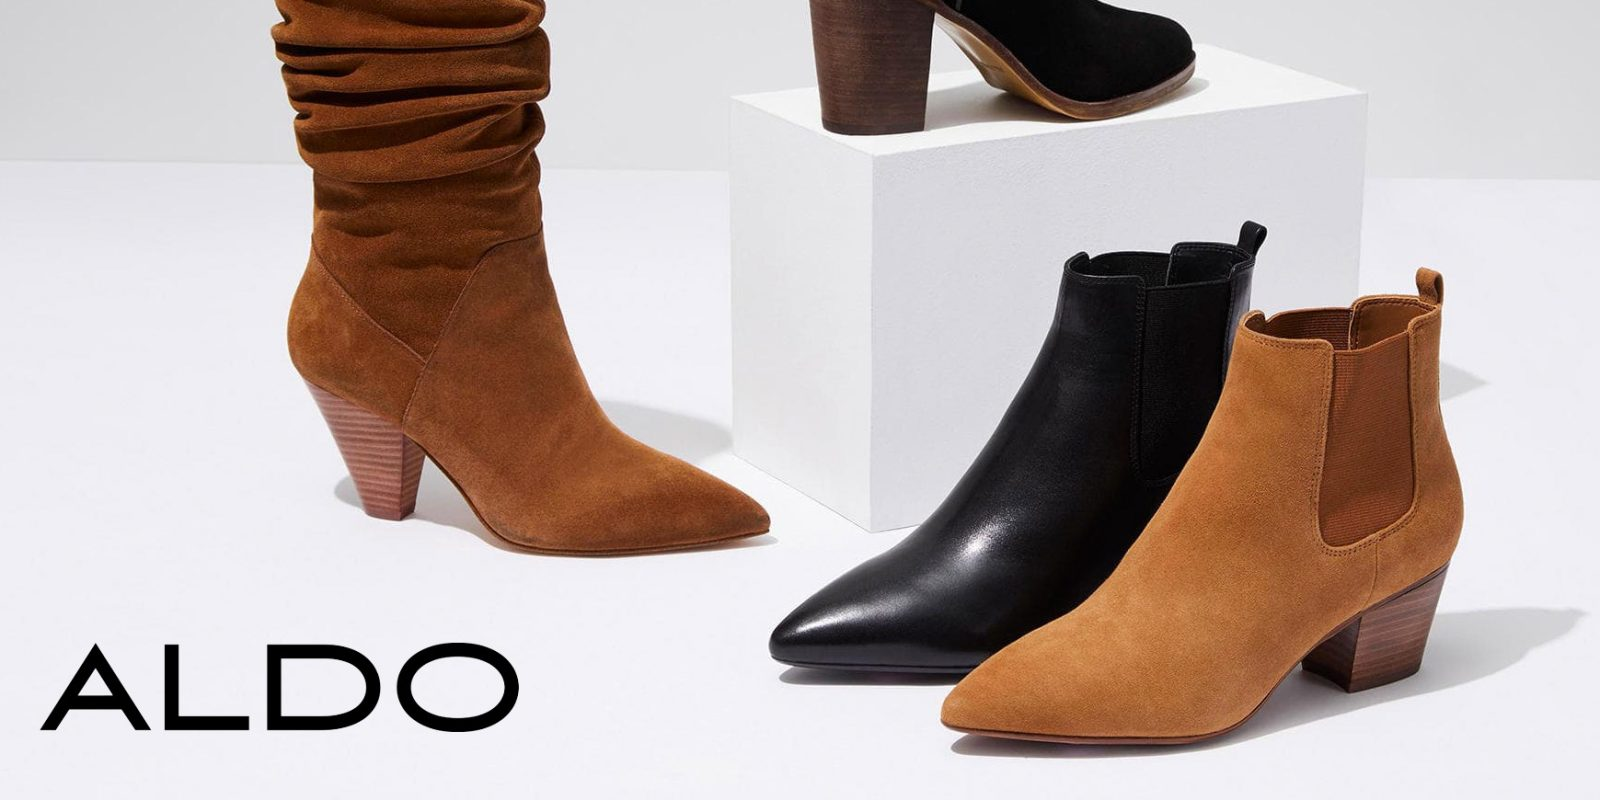 018ce6ae26fc6d ALDO takes up to 60% off all sale items + an extra $15 off your purchase of  $60 or more